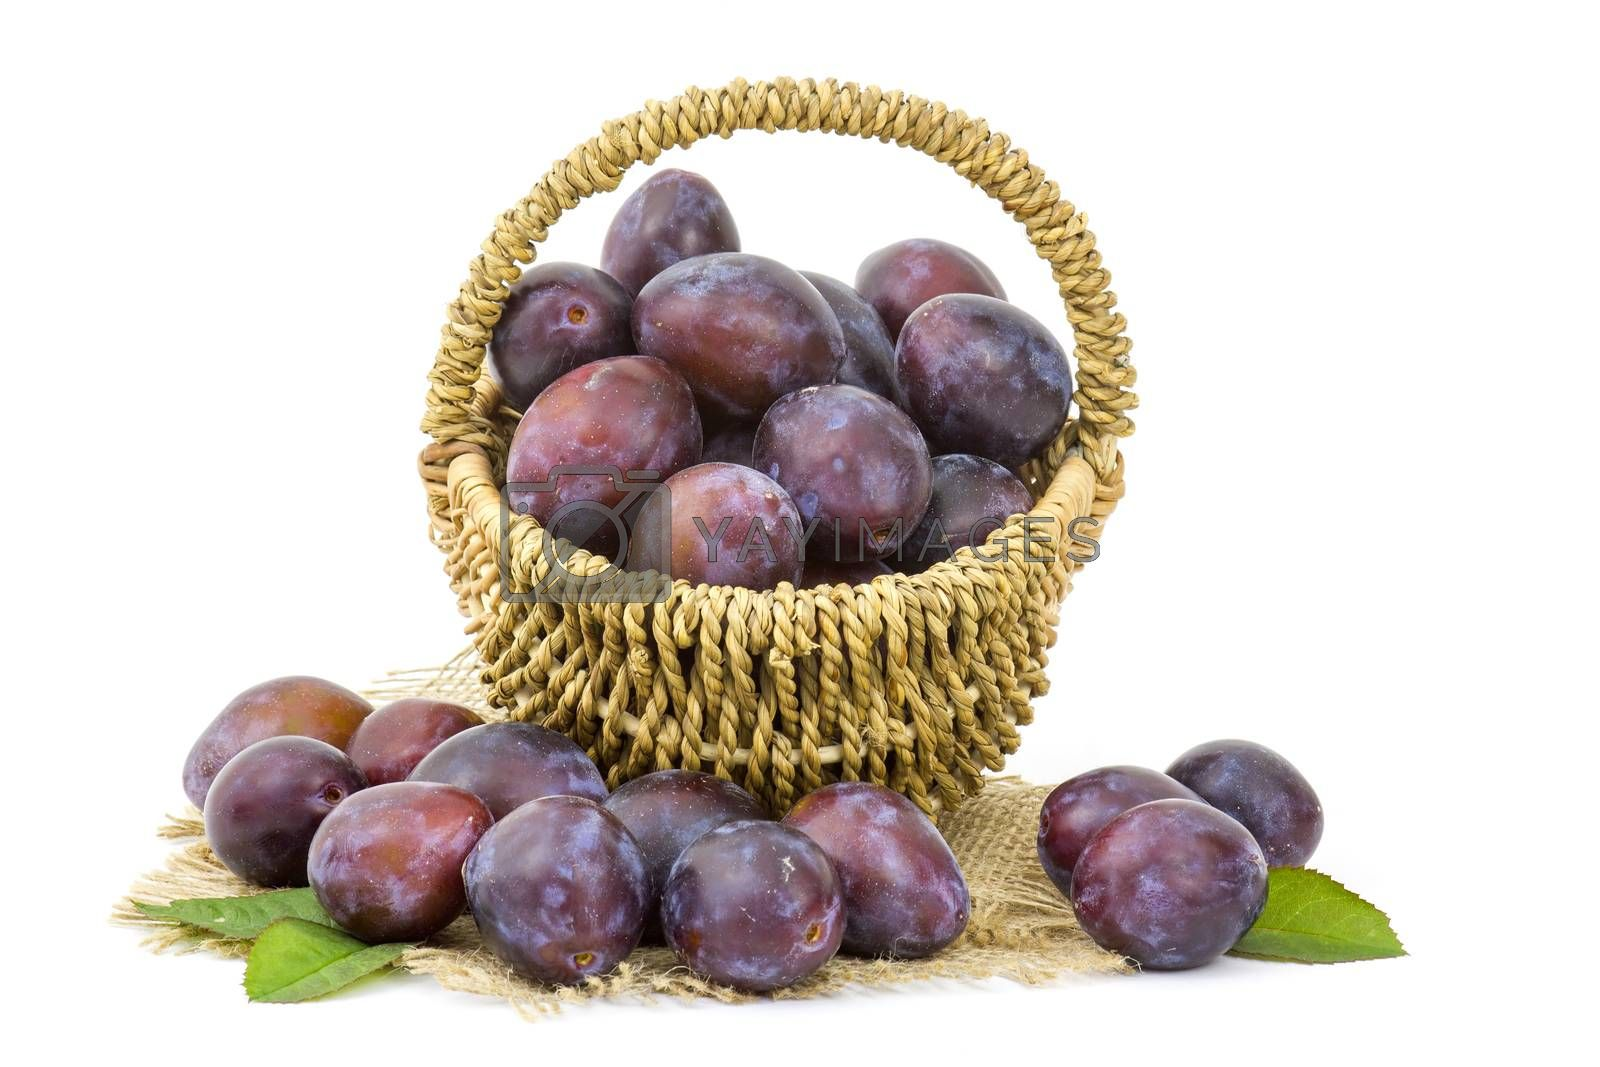 fresh plums in a basket on white background